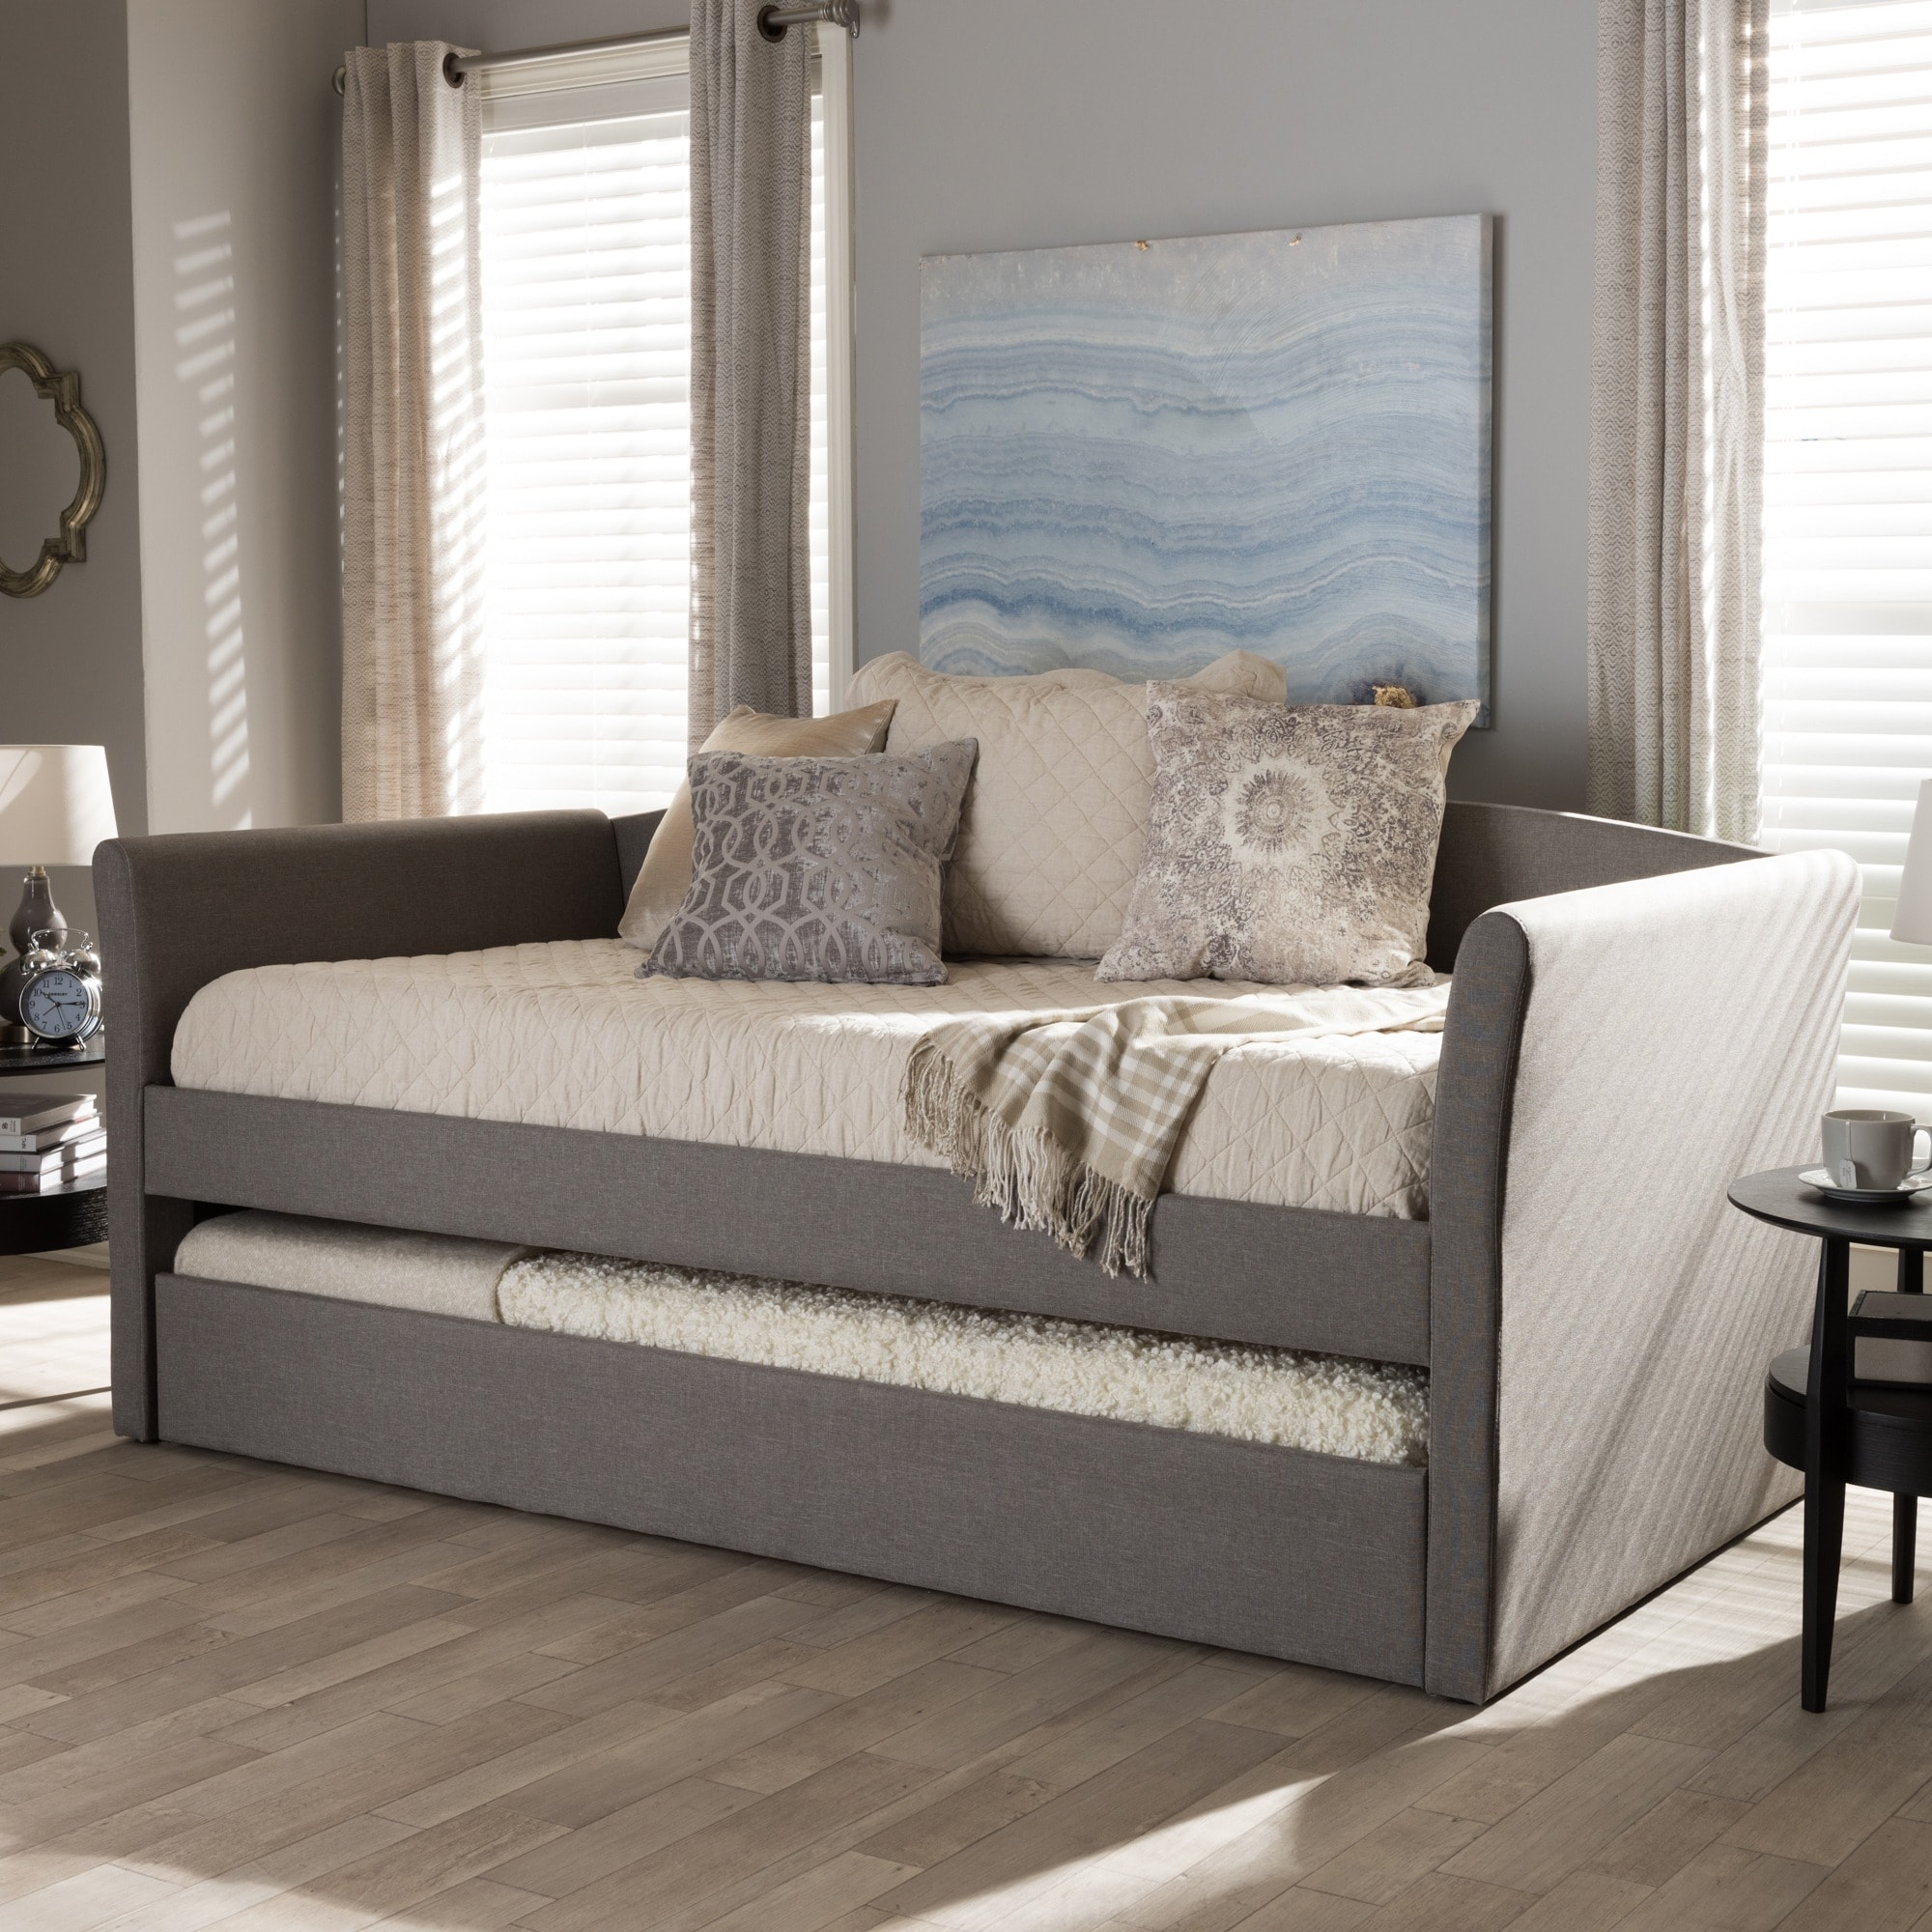 baxton studio kassandra modern and contemporary daybed with guest trundle bed ebay. Black Bedroom Furniture Sets. Home Design Ideas